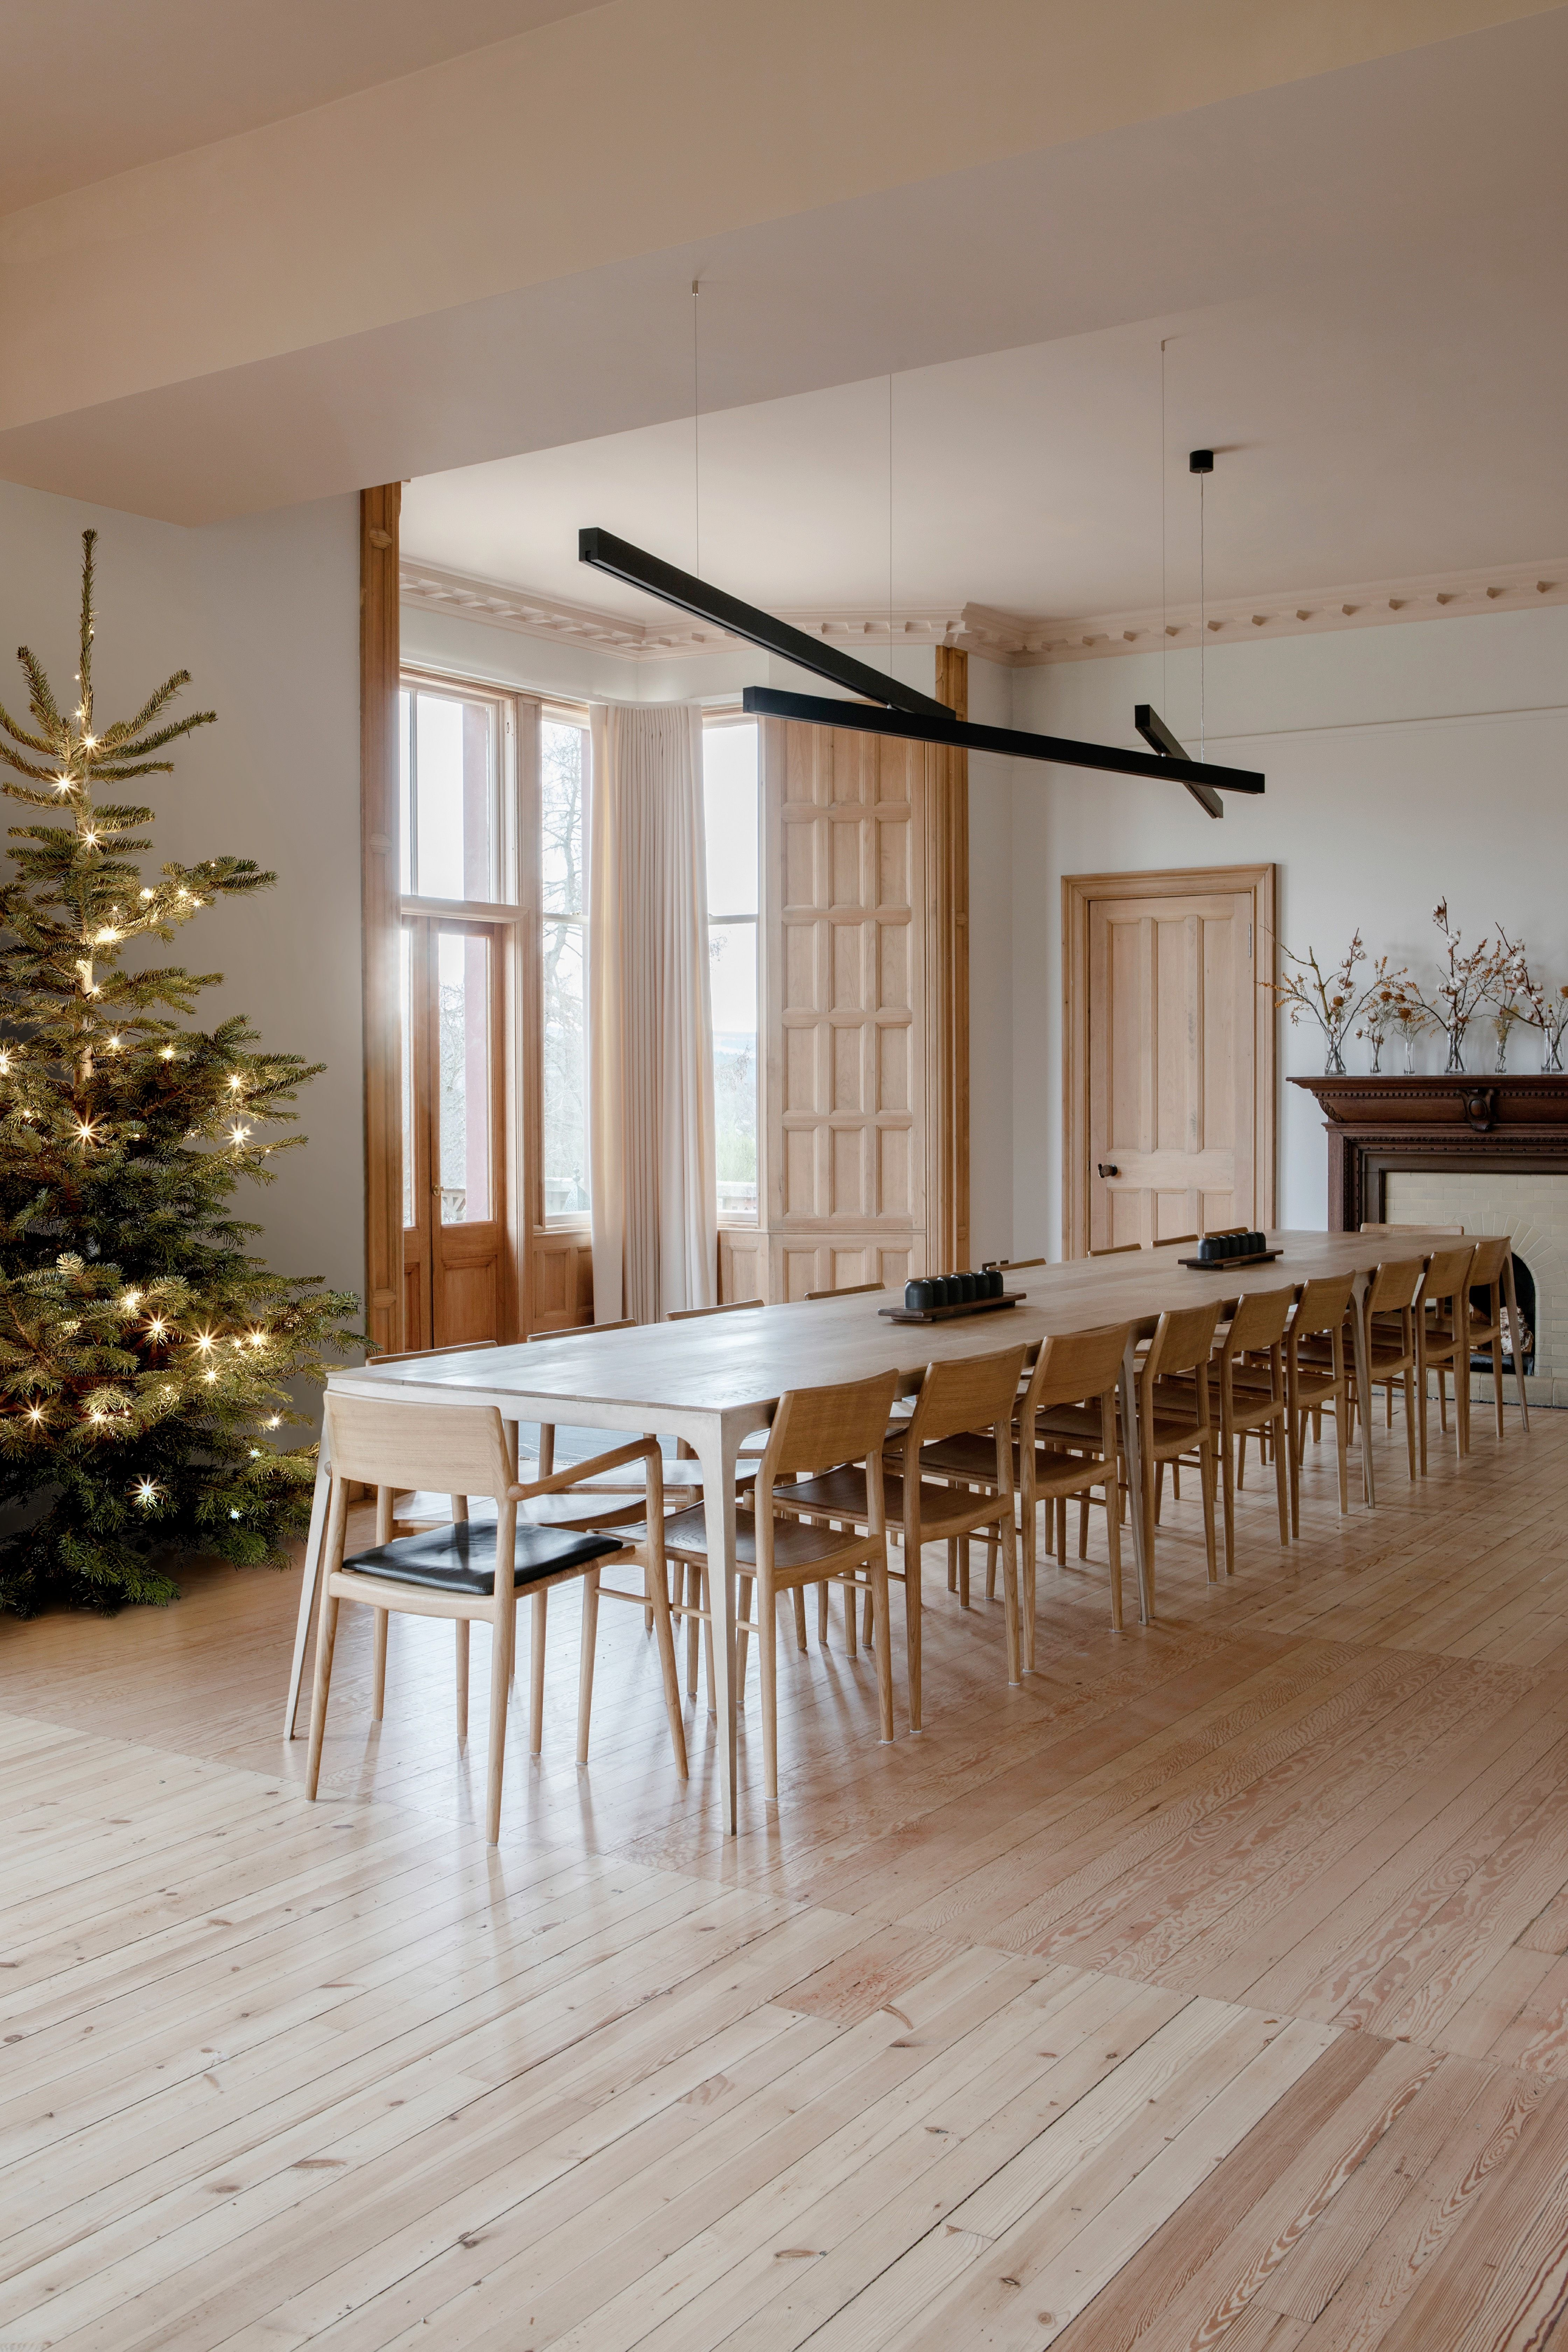 This renovated Scottish pile is the perfect home for the festive season